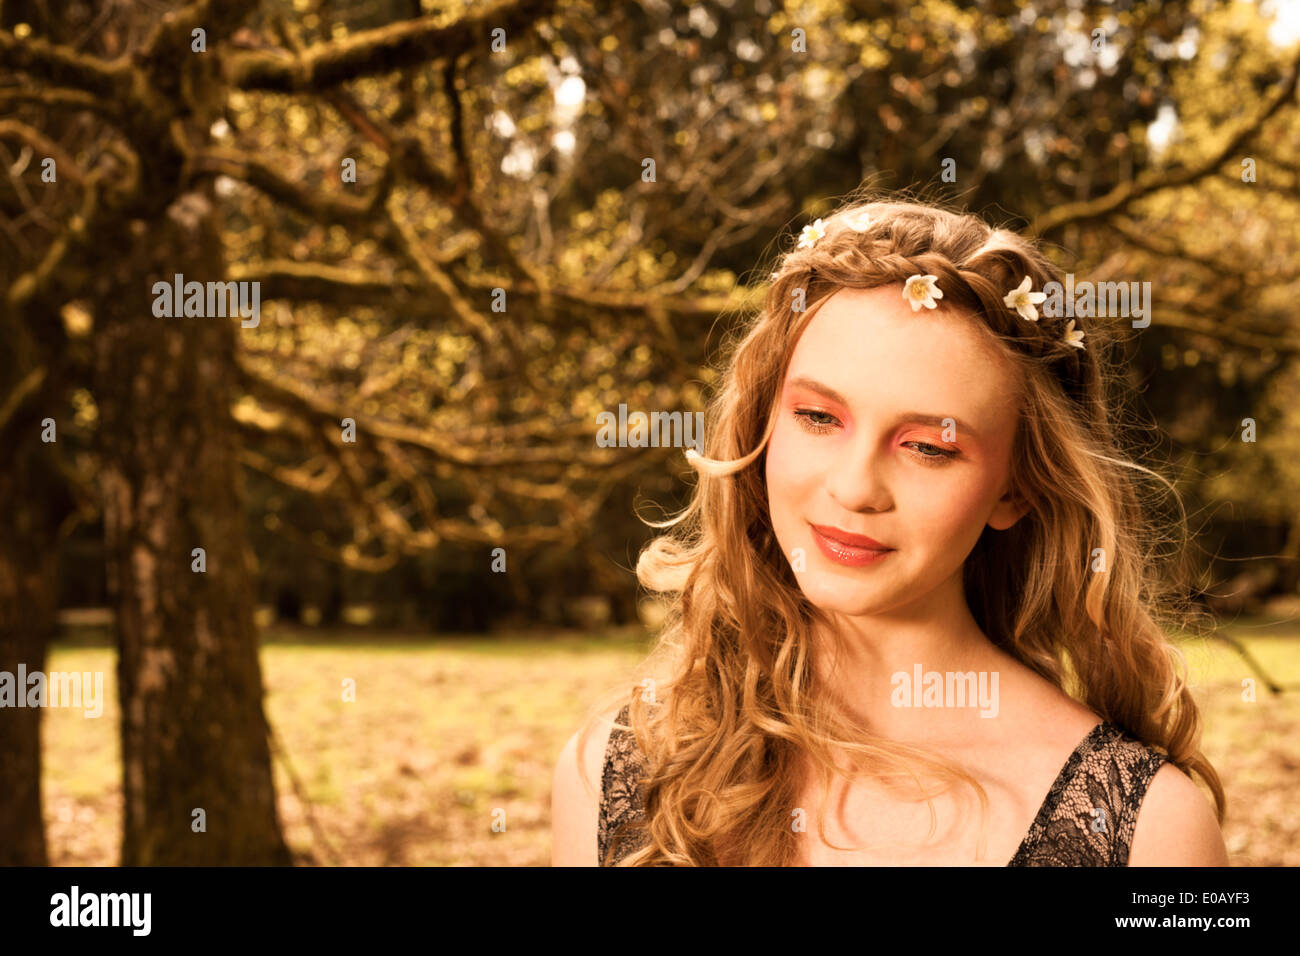 Portrait of daydreaming young woman with flowers in hair - Stock Image